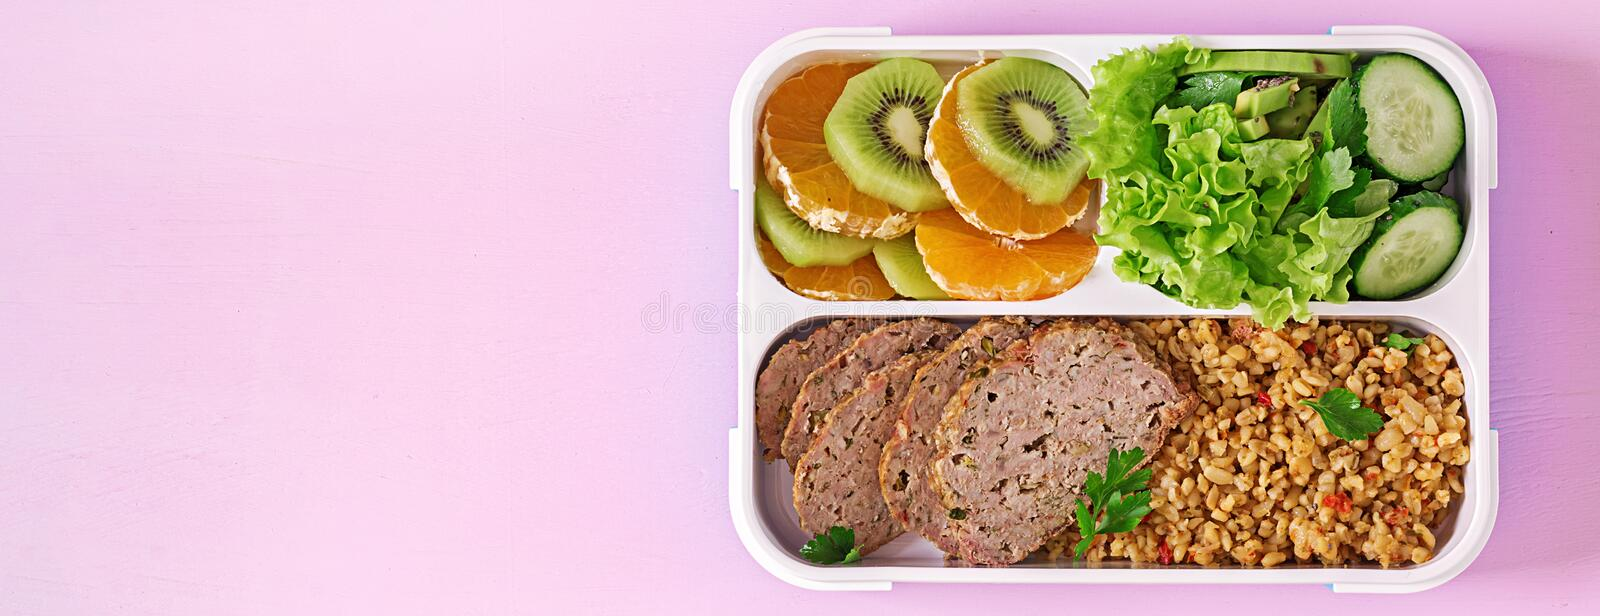 Healthy lunch with bulgur, meat and fresh vegetables and fruit stock photo